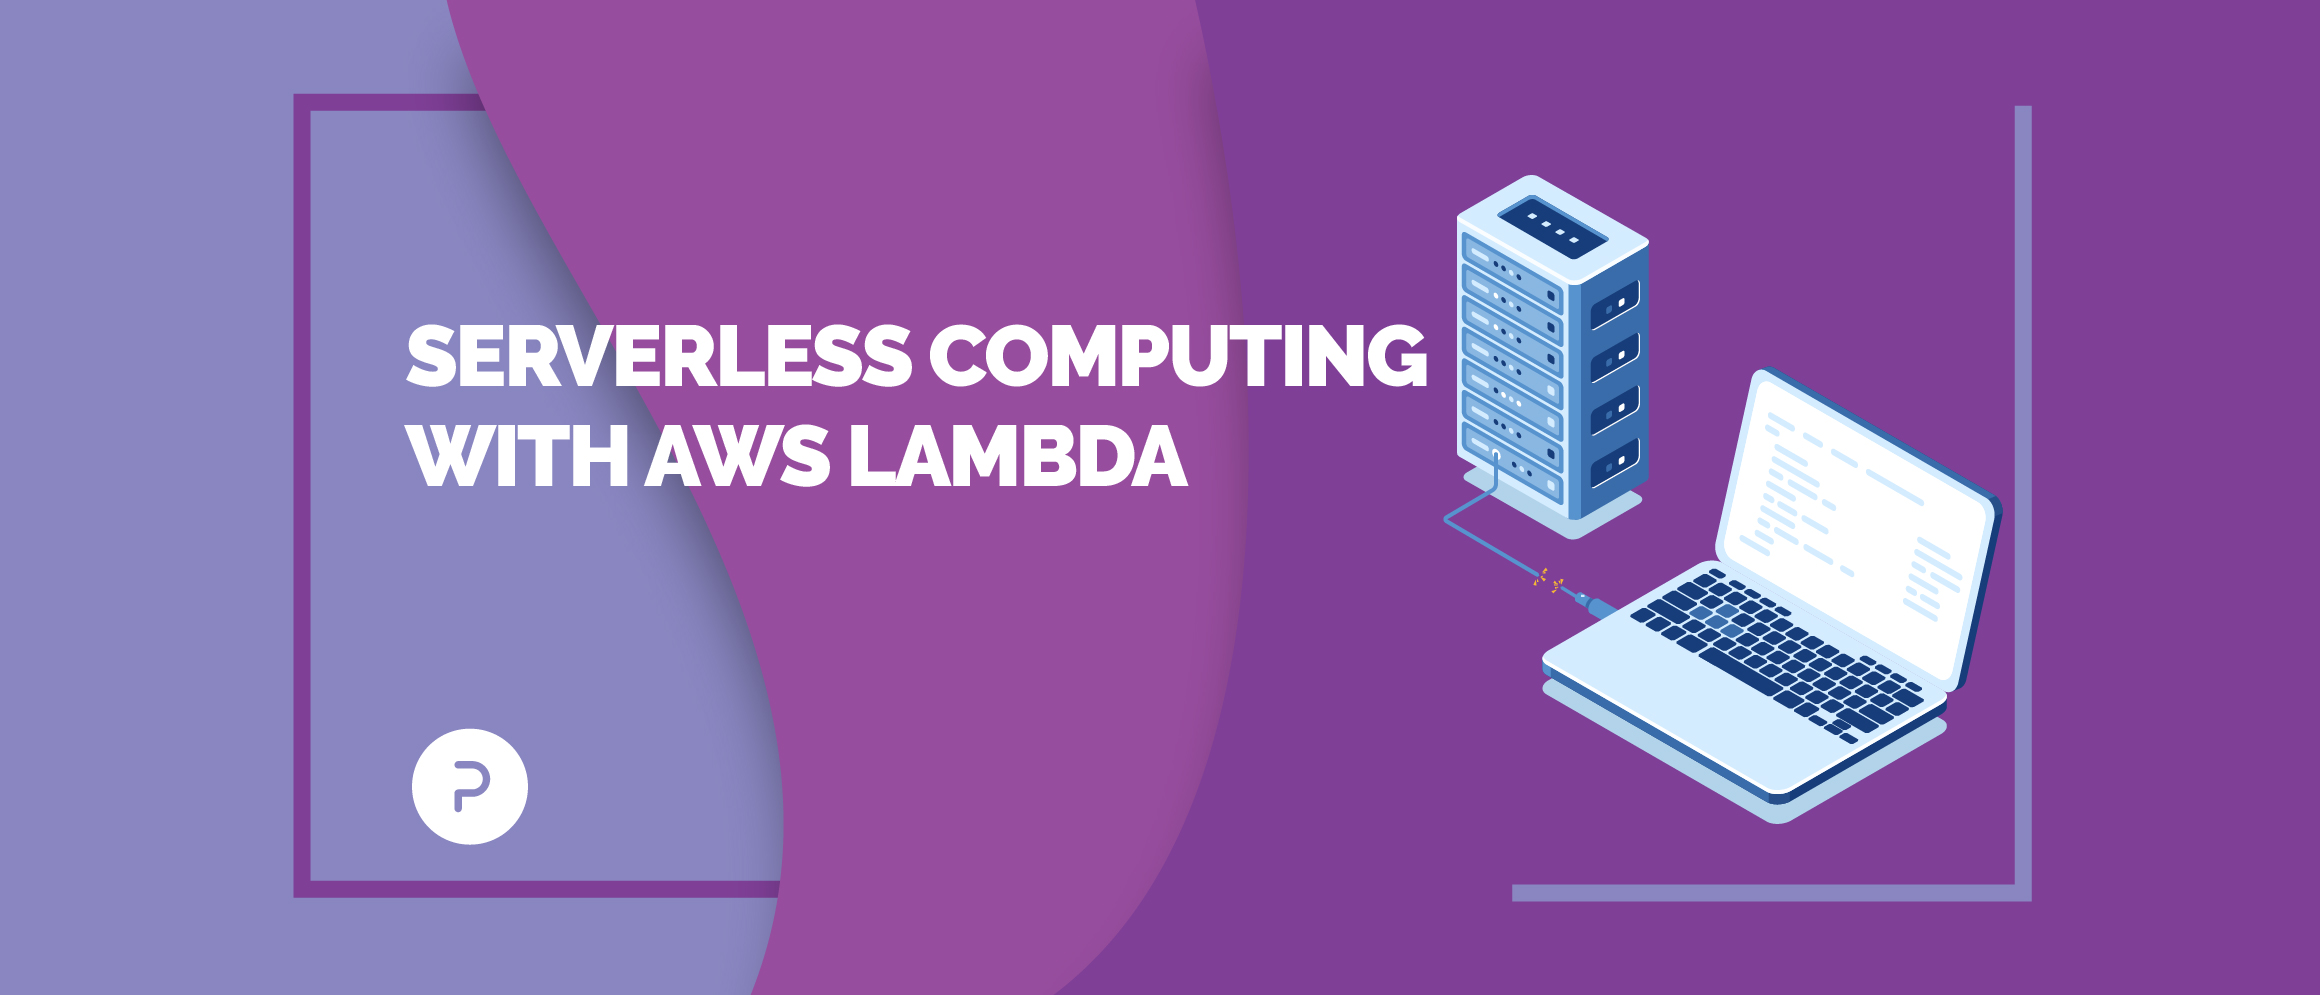 Serverless Computing: Driving Agility and Scalability with AWSLambda